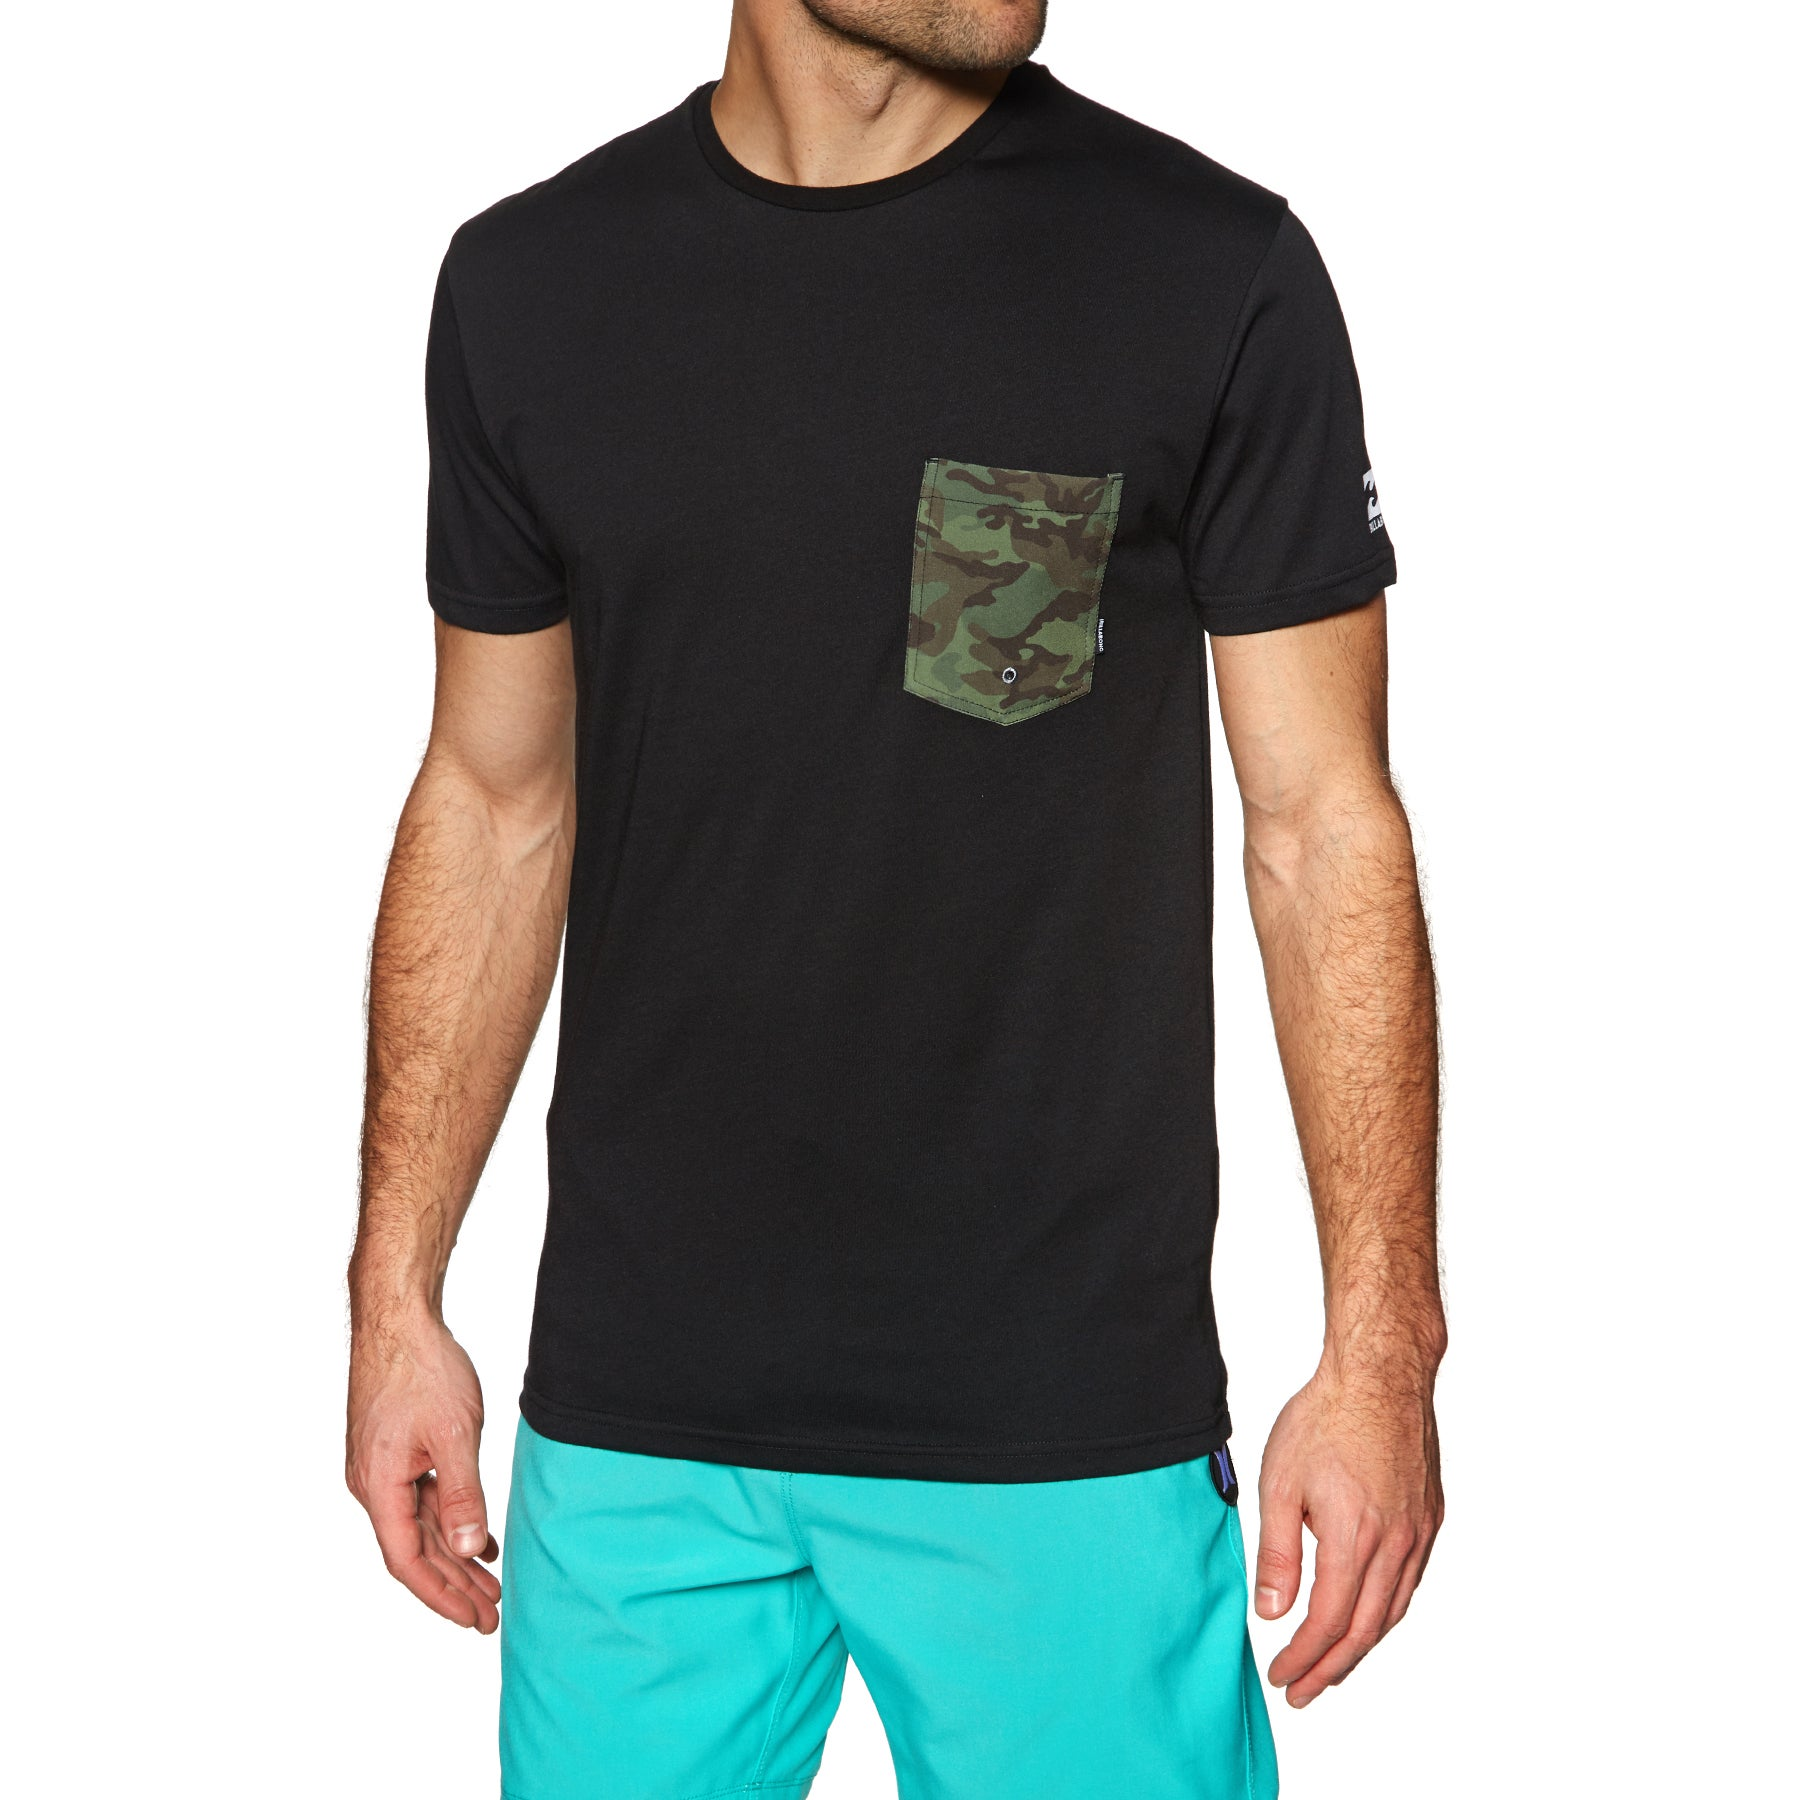 Billabong Team Pocket Short Sleeve Surf T-Shirt - Black